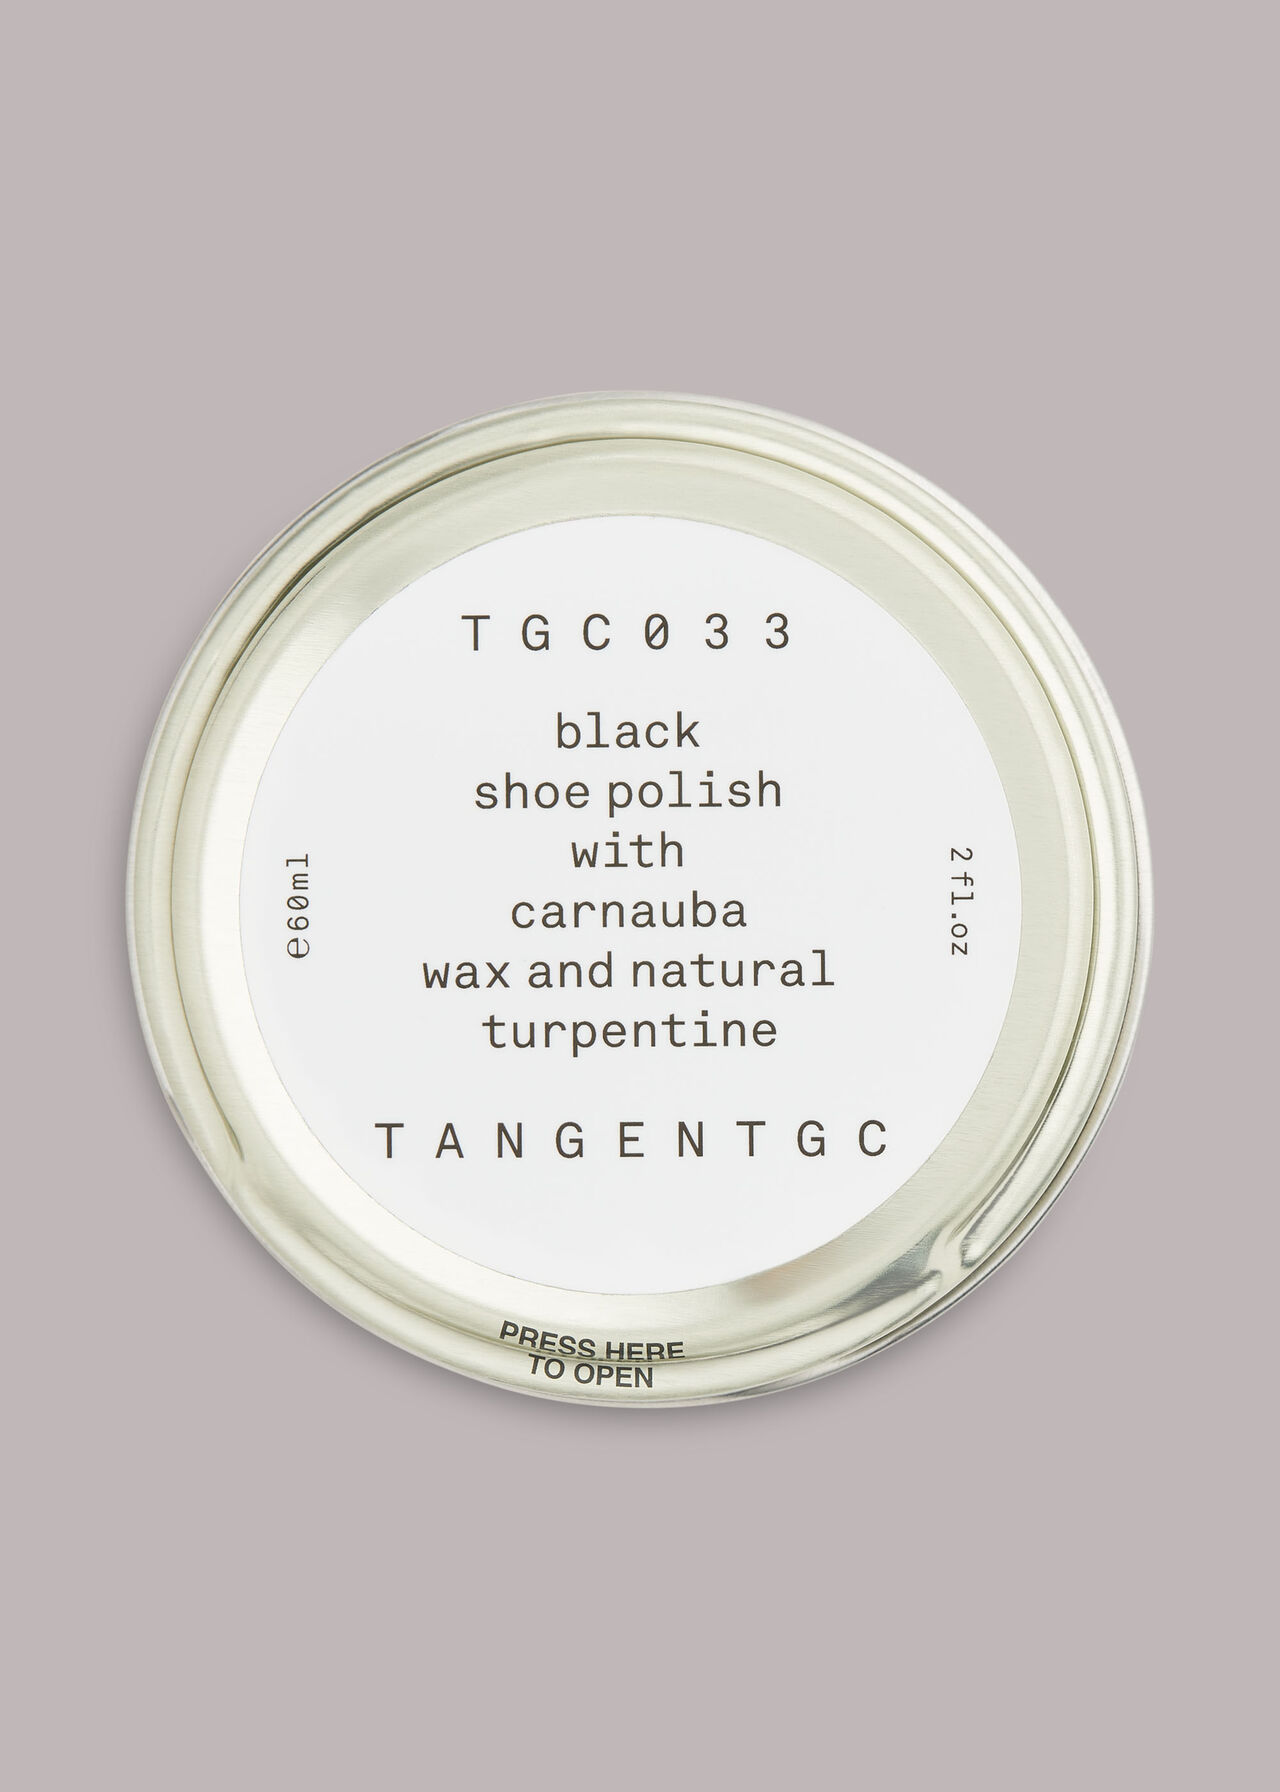 Tangent GC Black Shoe Polish